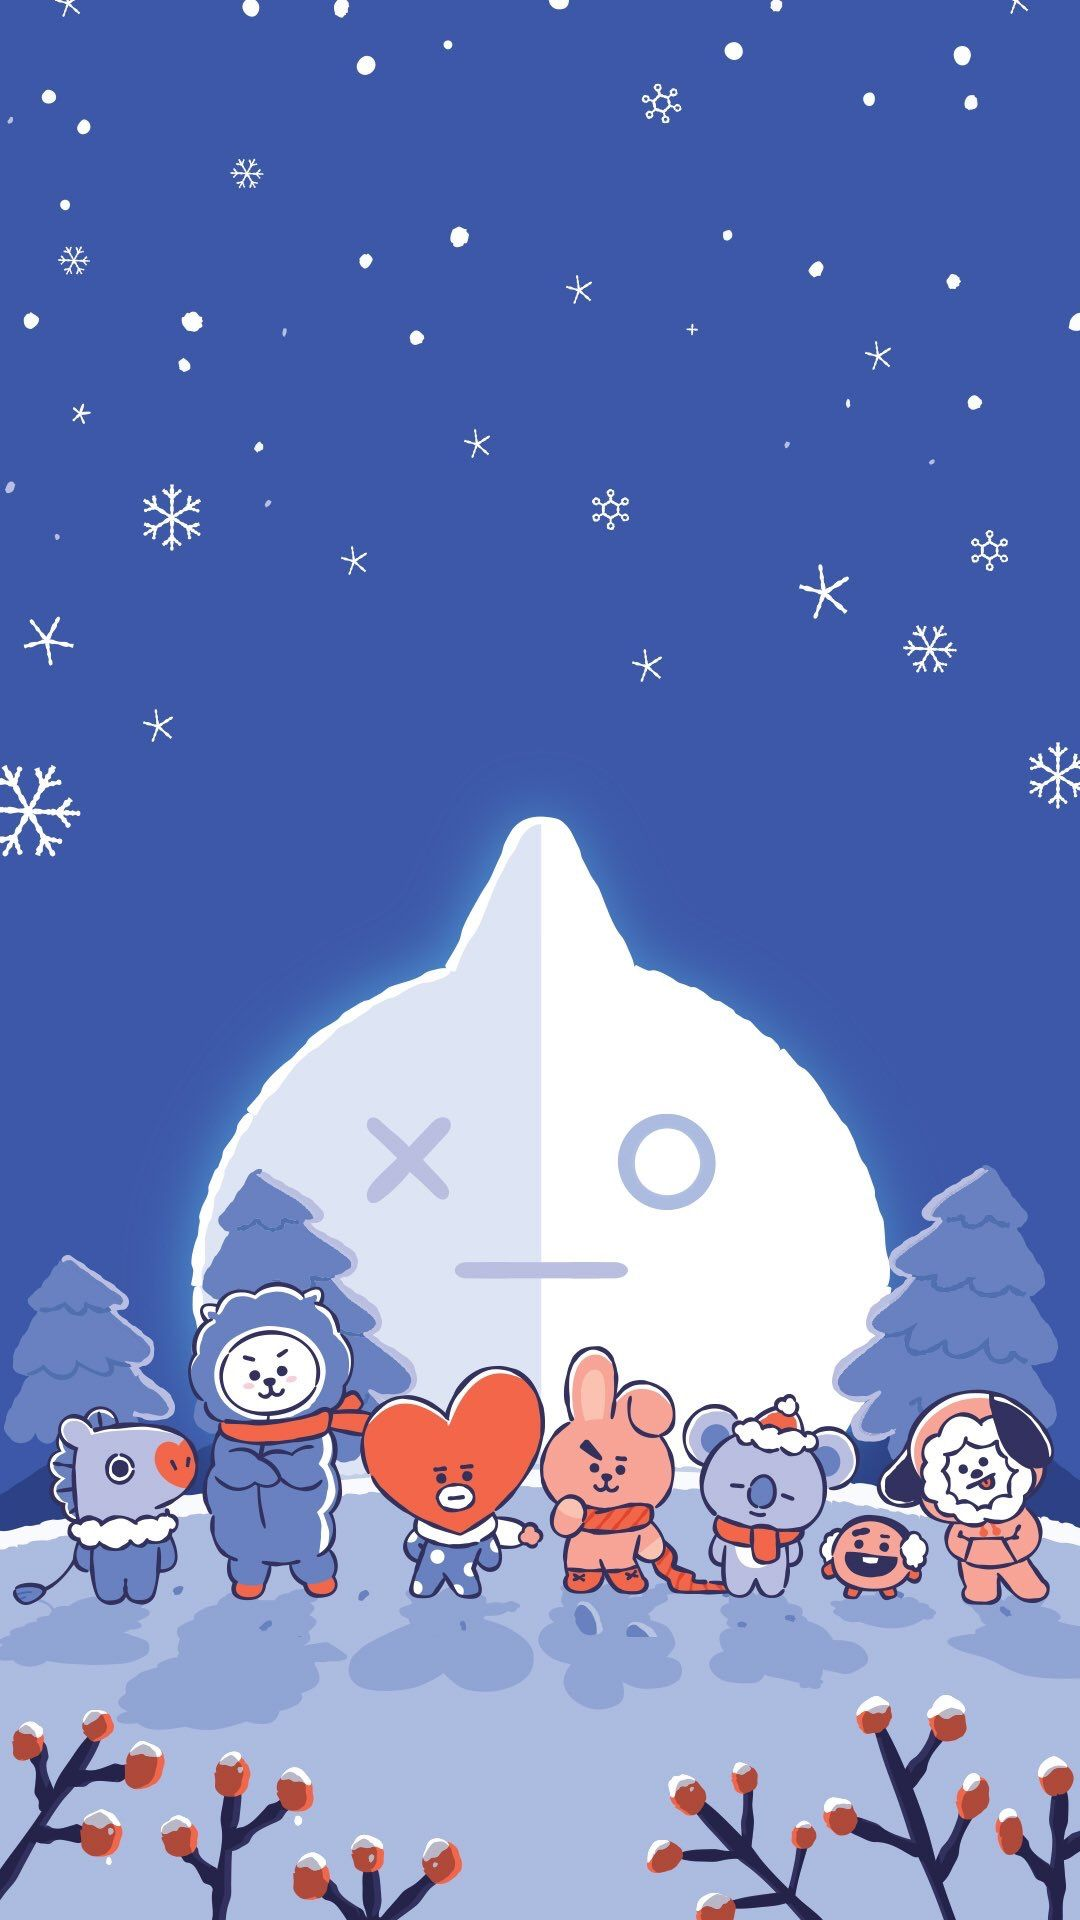 Hot Or Cold It Doesn T Matter Wherever You Are Bt21 Will Make Your Days Special Come And Get Bt21 S Bts Christmas Bts Wallpaper Wallpaper Iphone Christmas